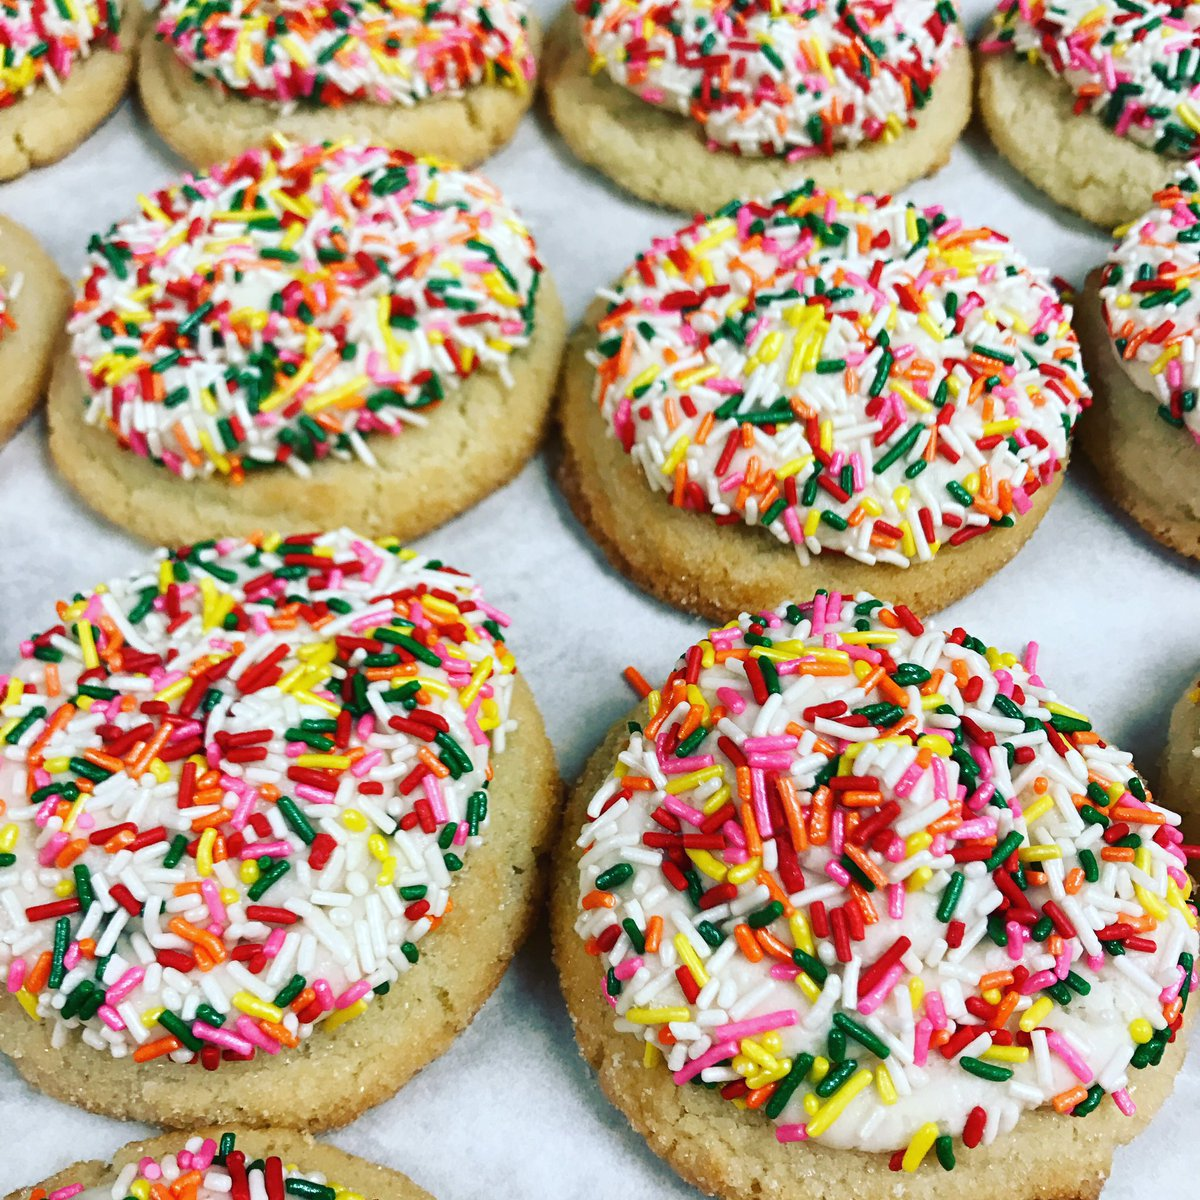 Sometimes you just need sprinkles to get you through the day.  #sprinkles #sprinklecookies #humpwednesday<br>http://pic.twitter.com/b0lkoGwdYq